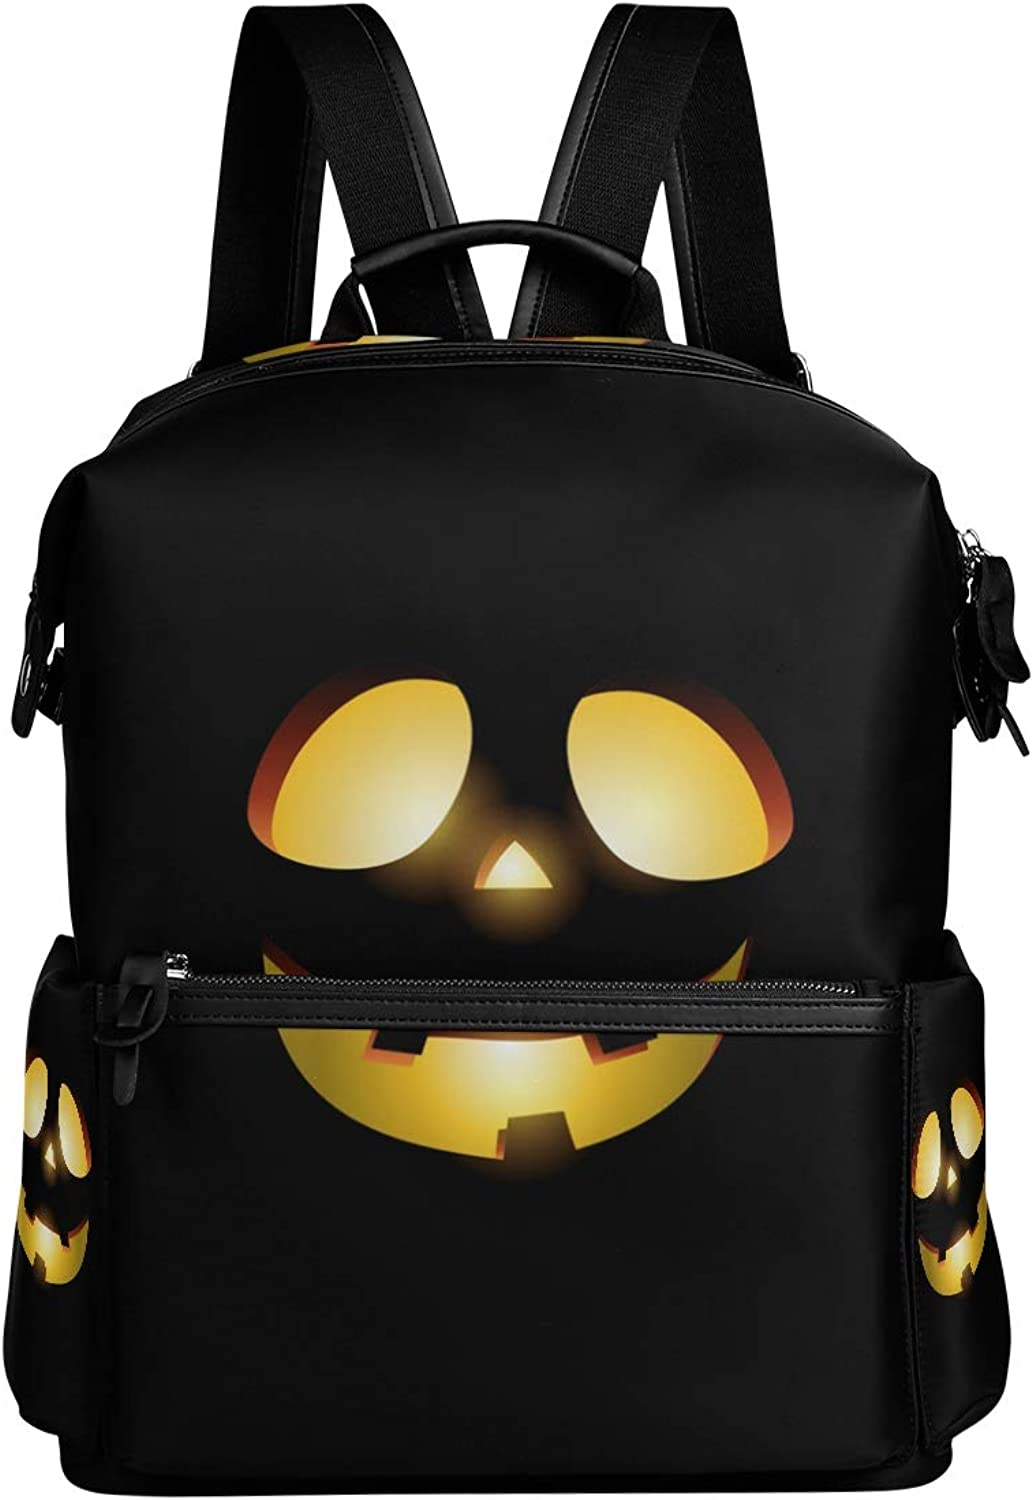 MONTOJ Scary Pumpkin Face Leather Travel Bag Campus Backpack